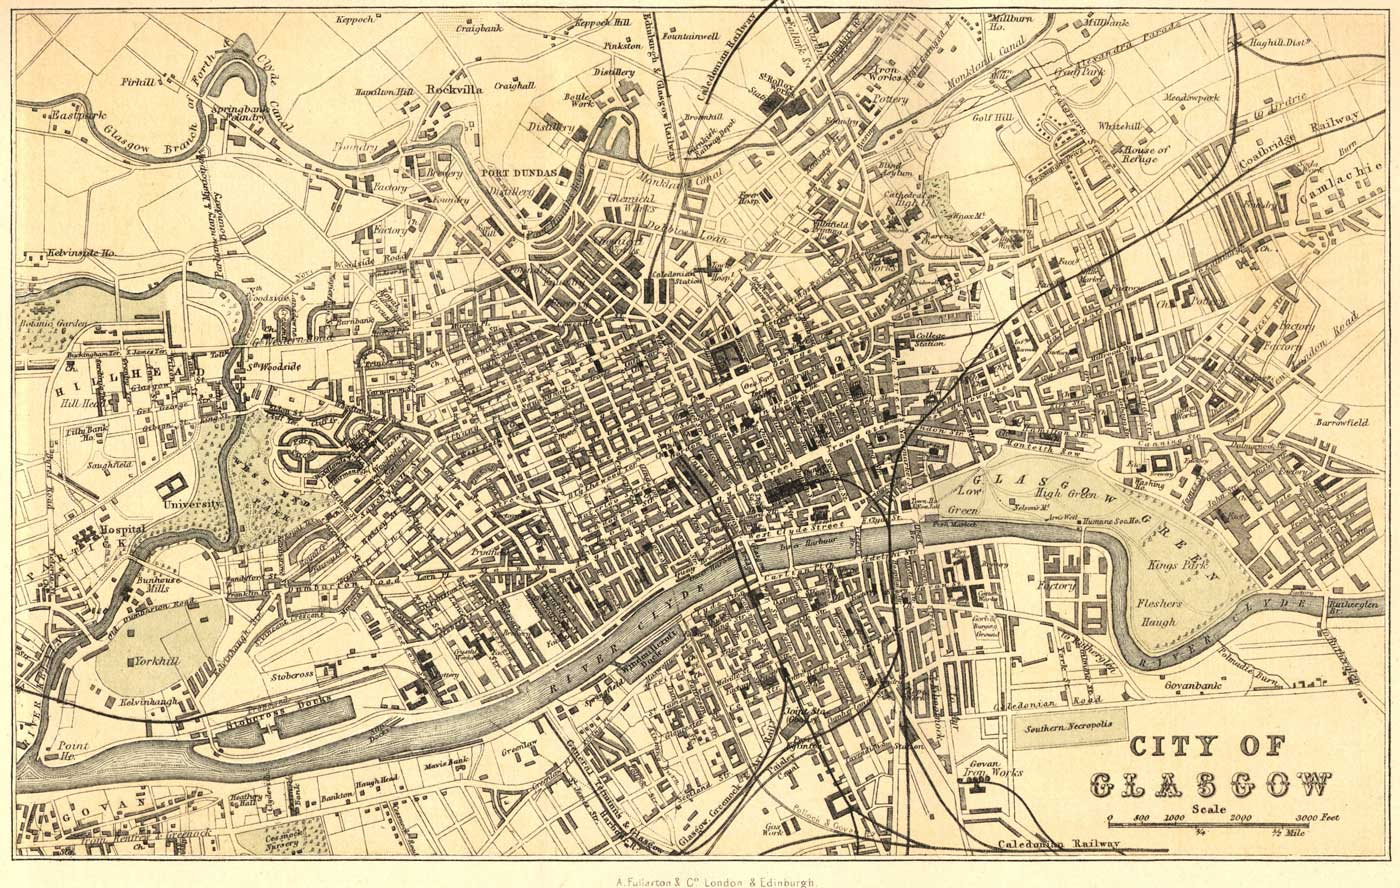 Old Map of Glasgow